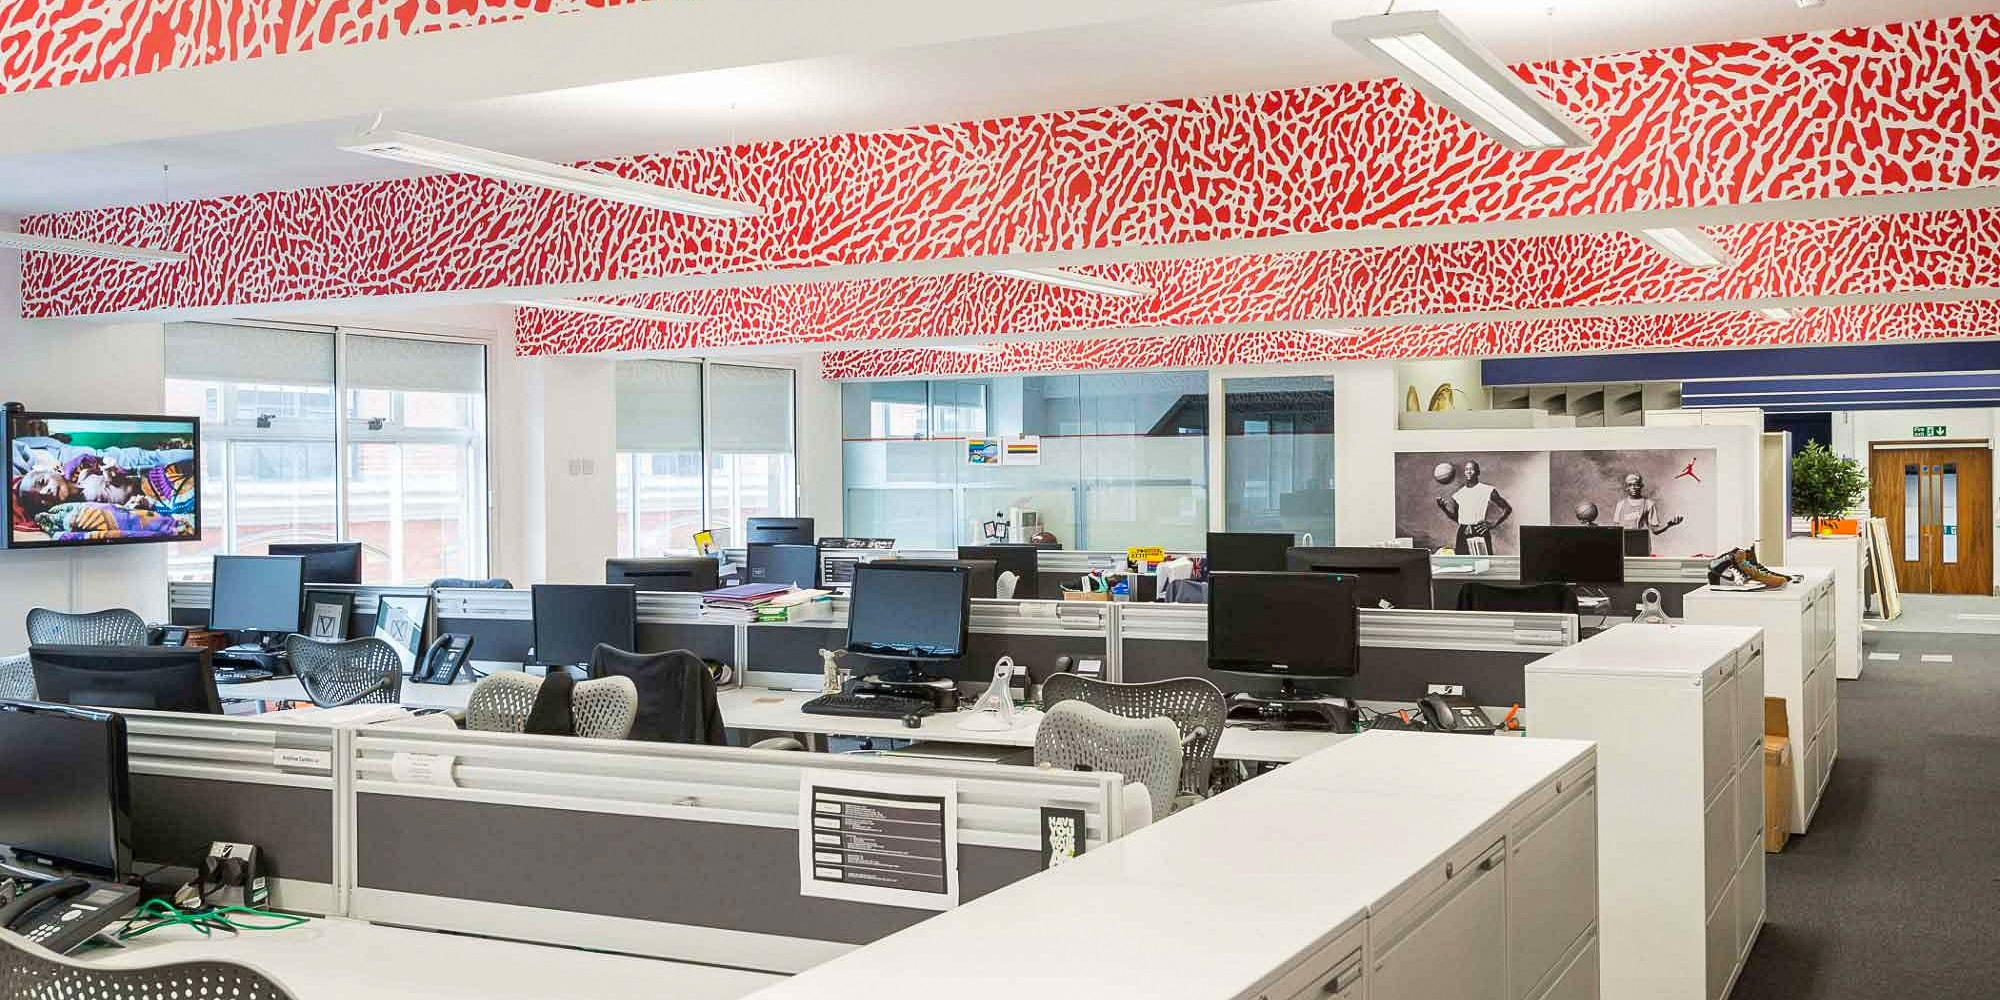 office with red vibrant ceiling design